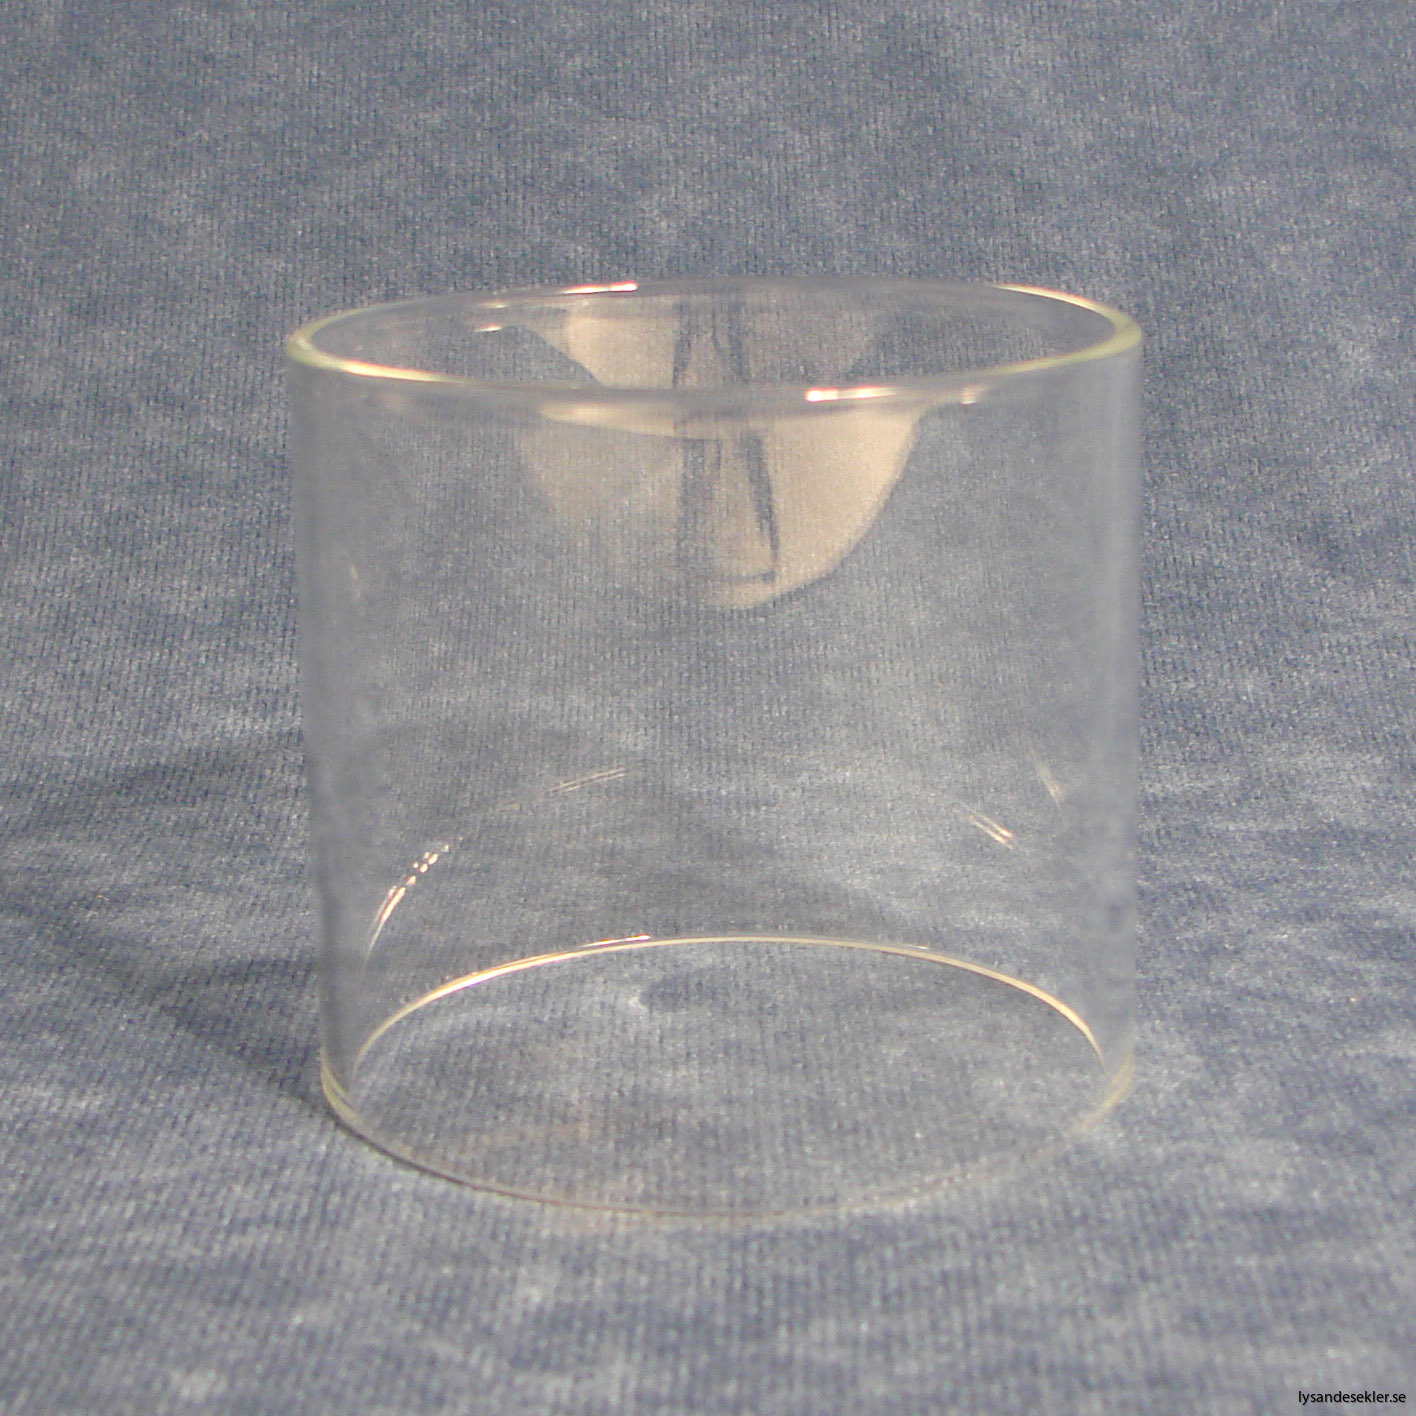 650151 outer glass clear